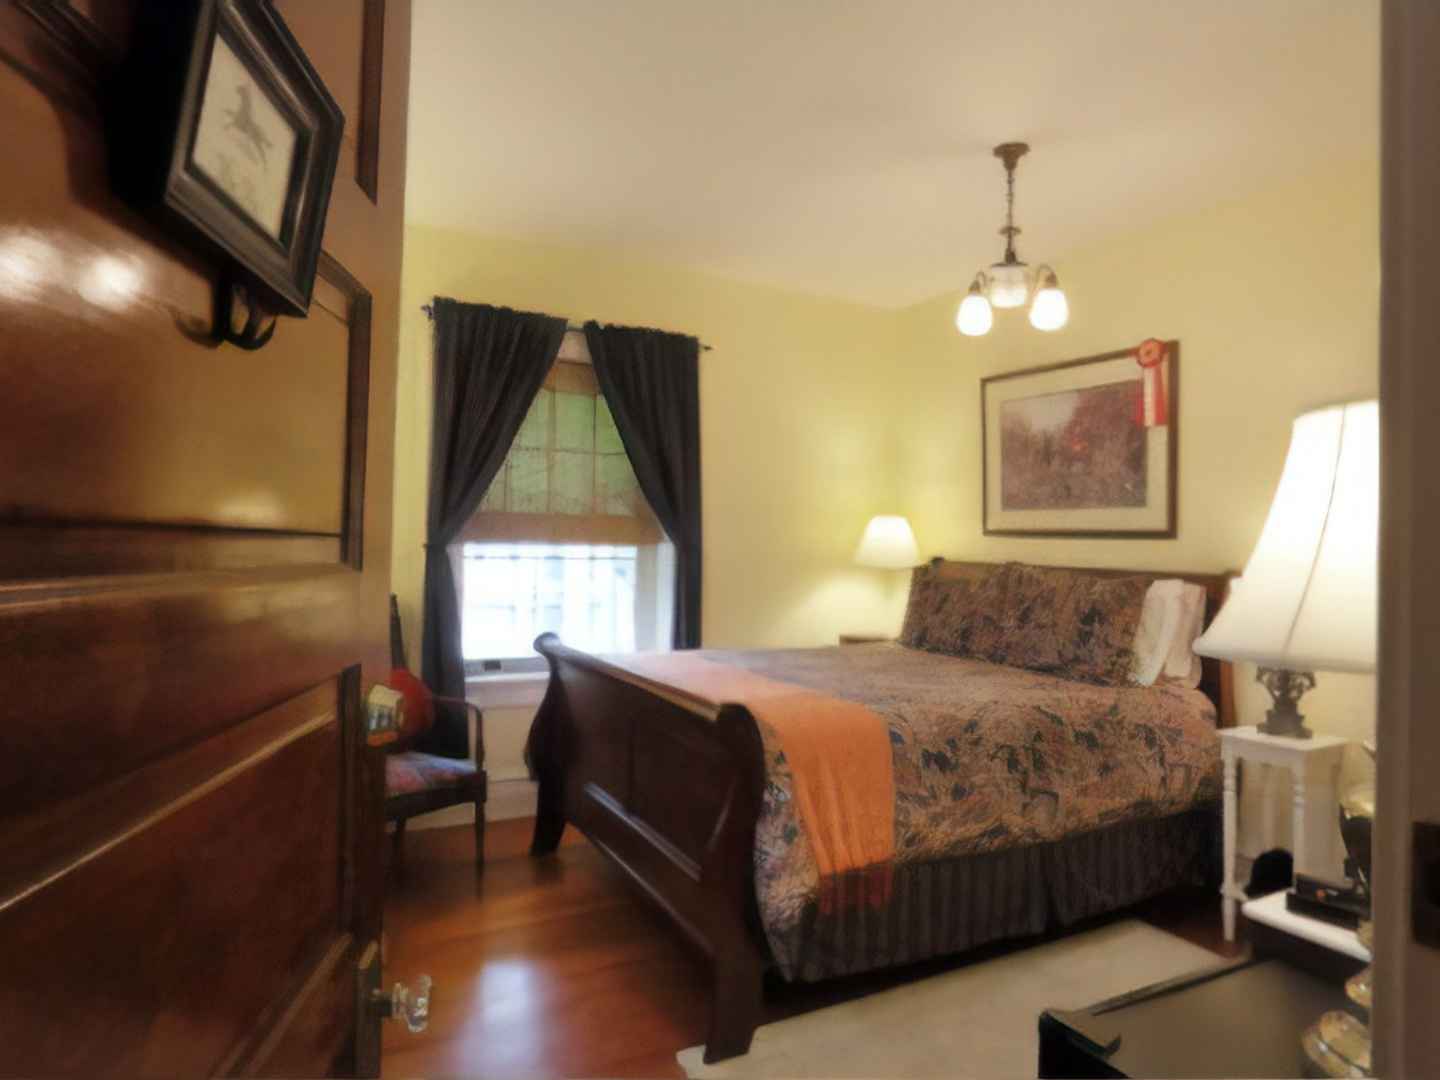 A bedroom with a bed in a hotel room at Olde Square Inn.